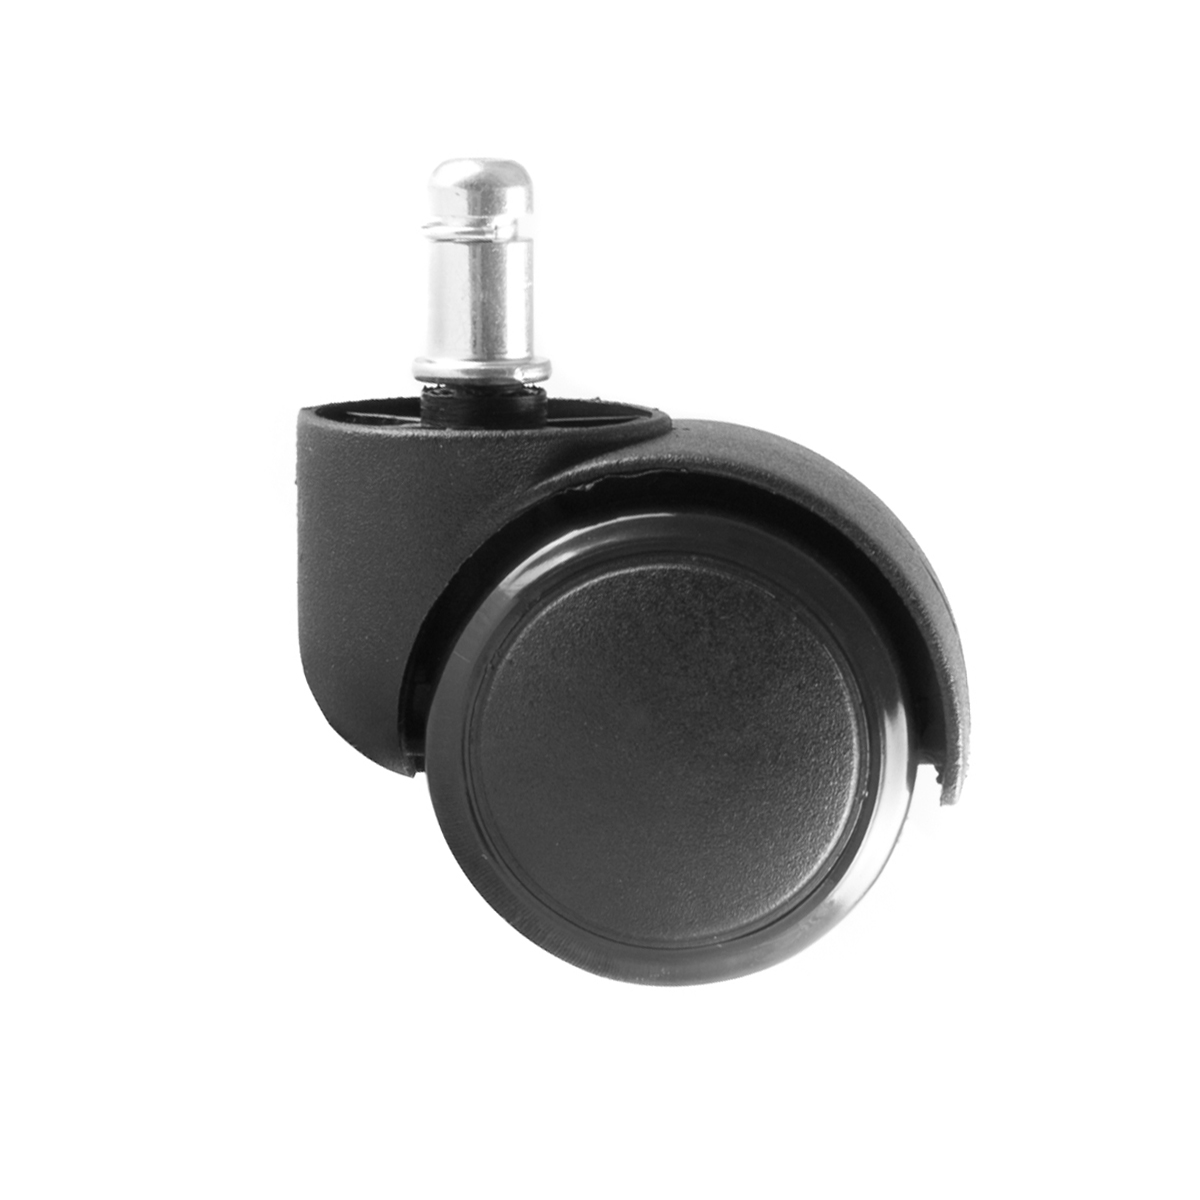 Replacement casters for office chairs black rubber for Office chair casters